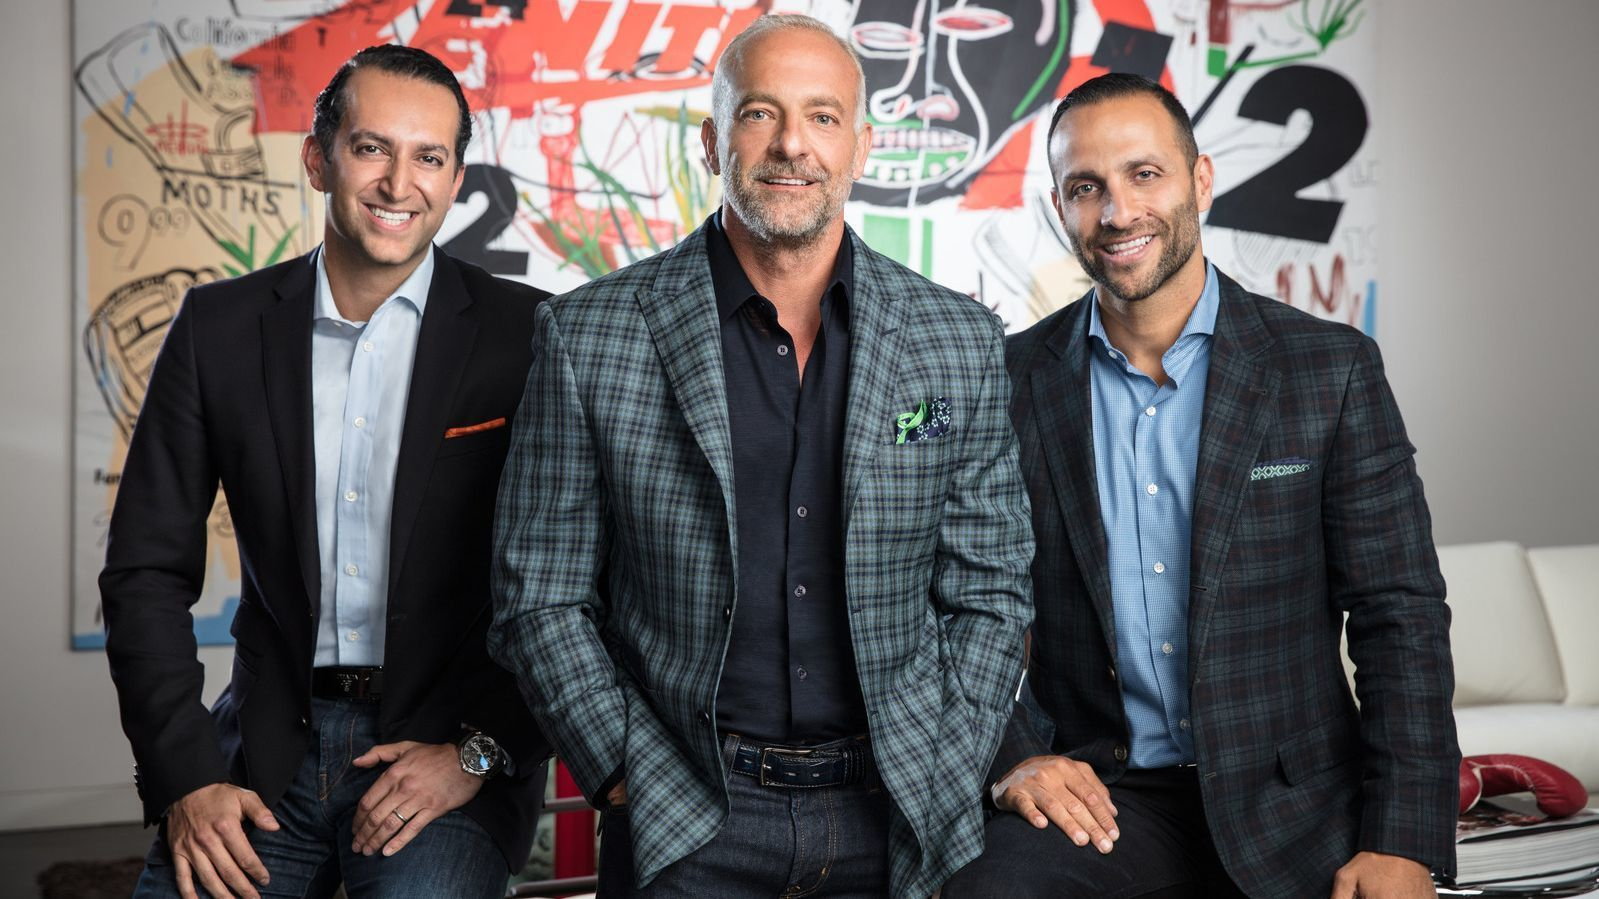 From left, Fertitta Capital's Sam Bakhshandehpour, managing director; Lorenzo Fertitta, chairman and co-founder; and Nakisa Bidarian, chief executive and co-founder.